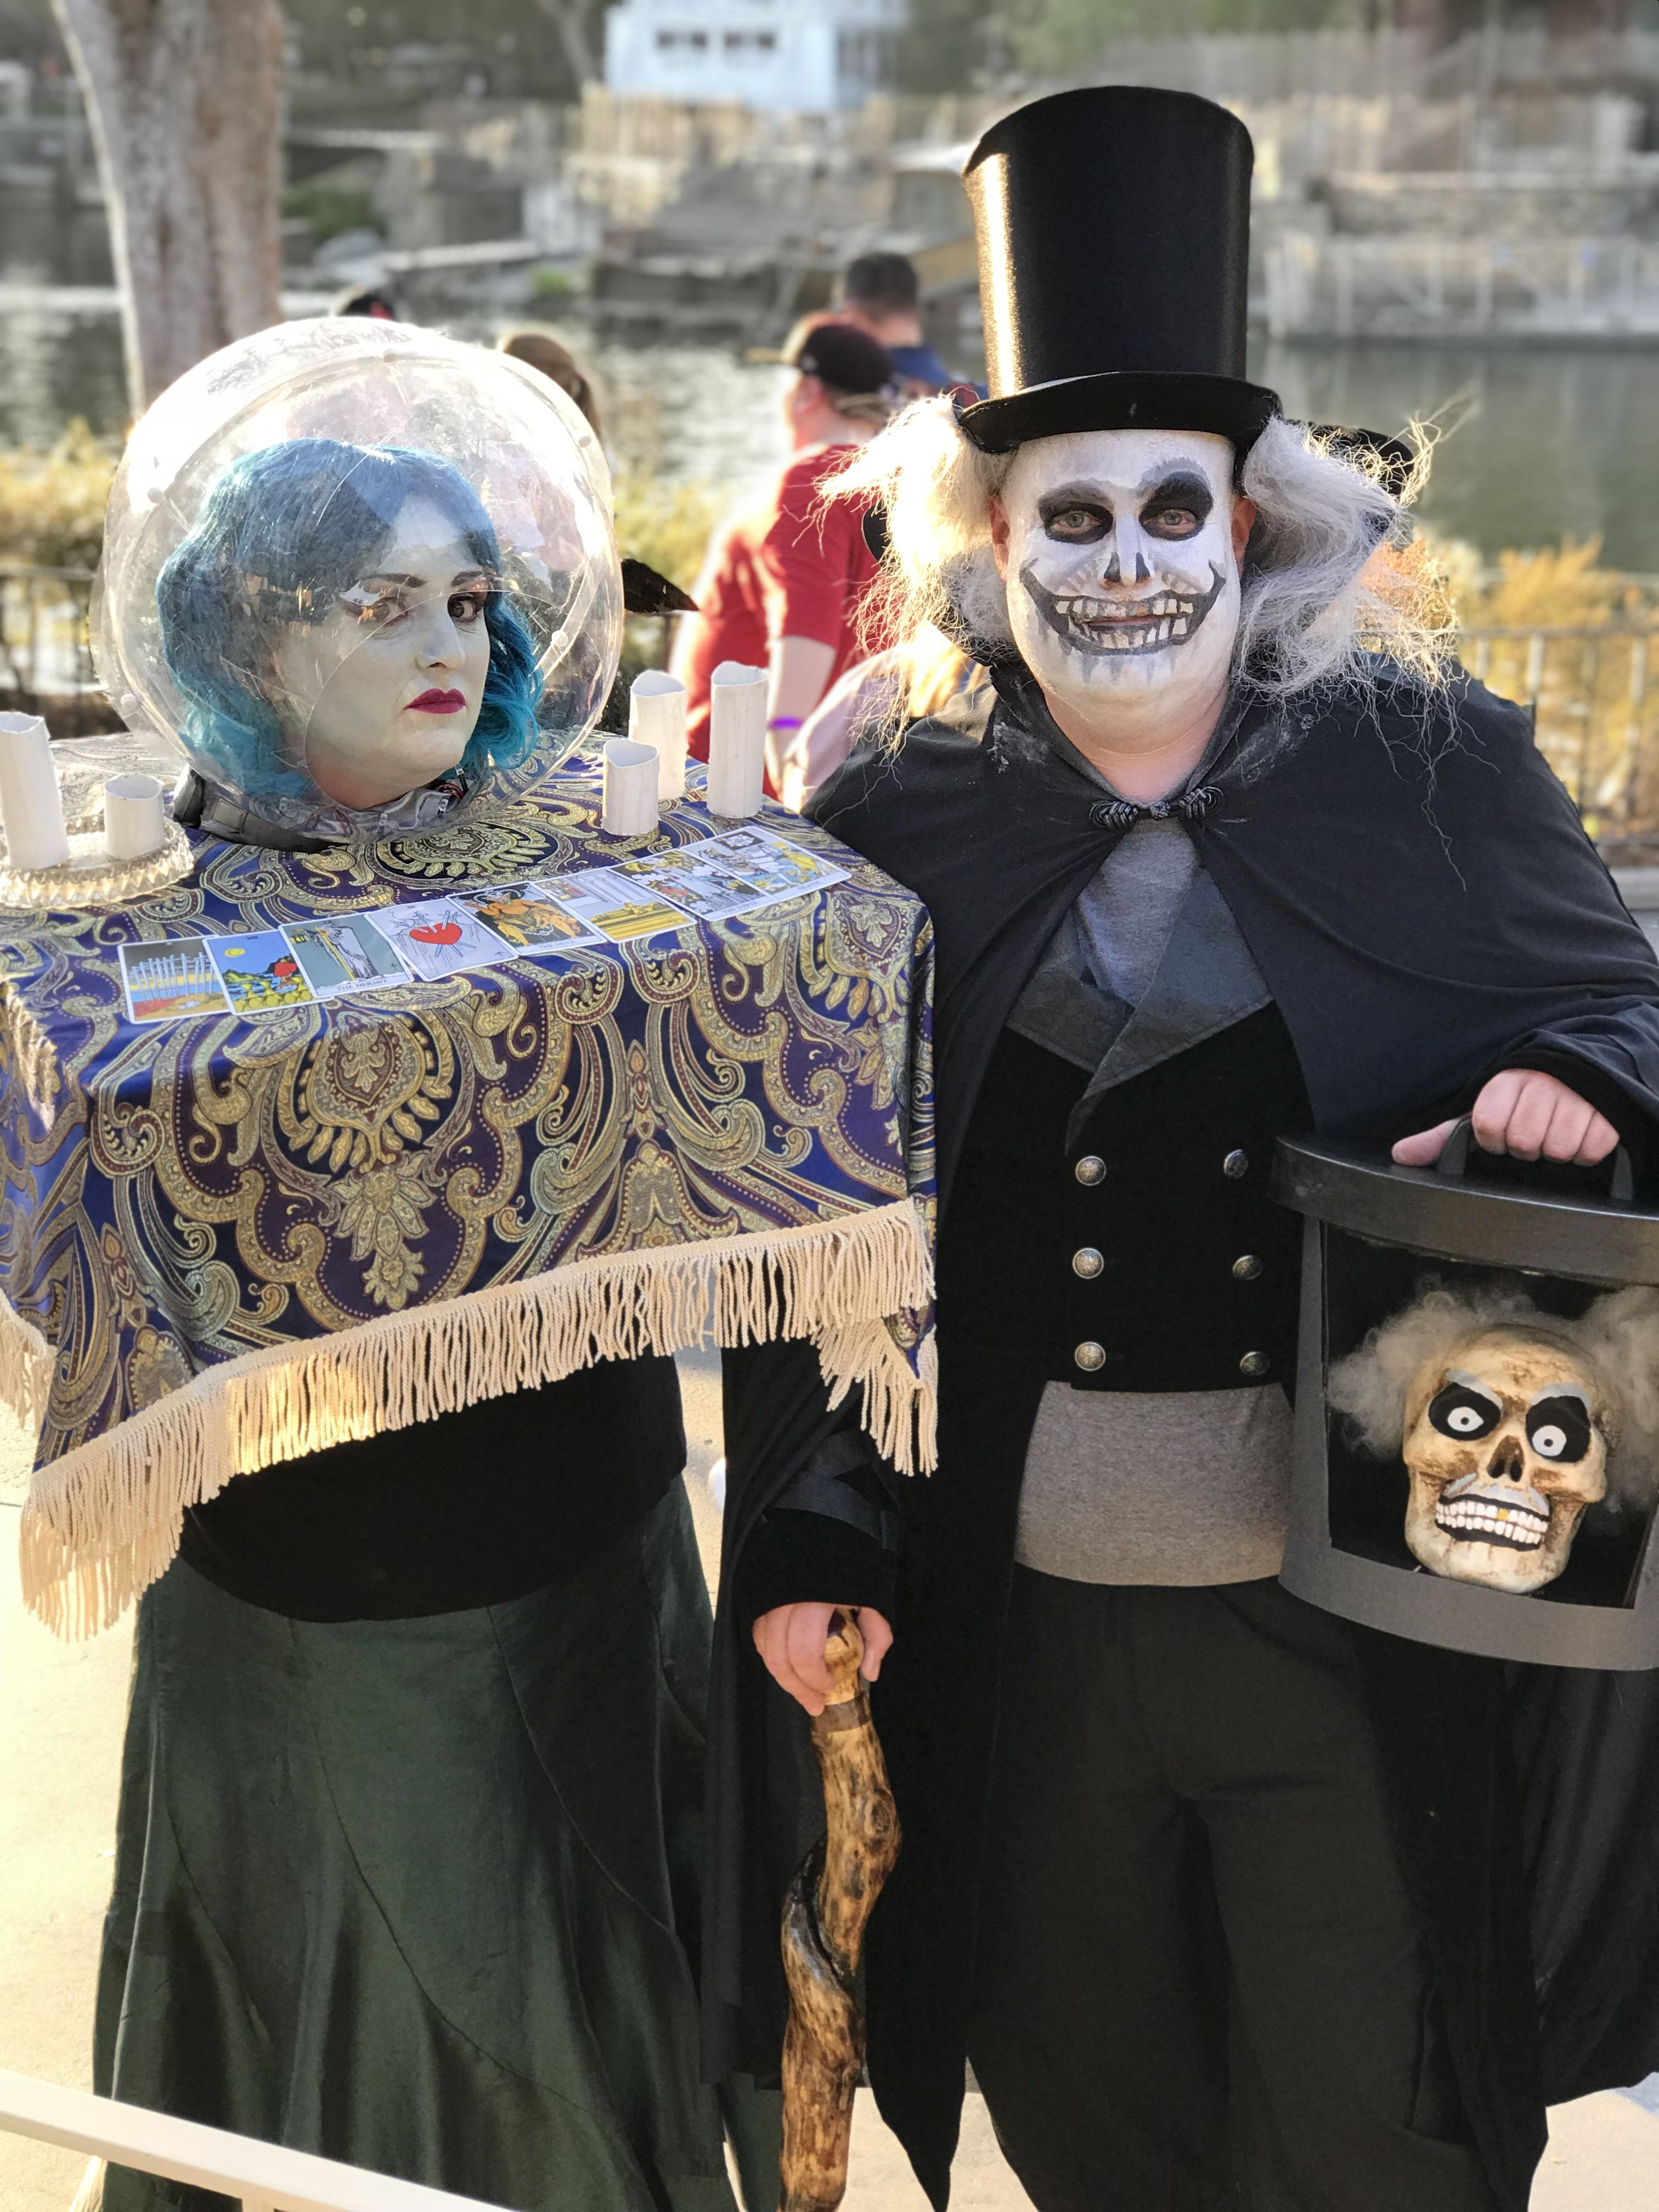 Madame Leota And Hatbox Ghost Haunted Mansion Cosplay Halloween Costumes At Disn Disney Halloween Decorations Haunted Mansion Halloween Haunted Mansion Costume